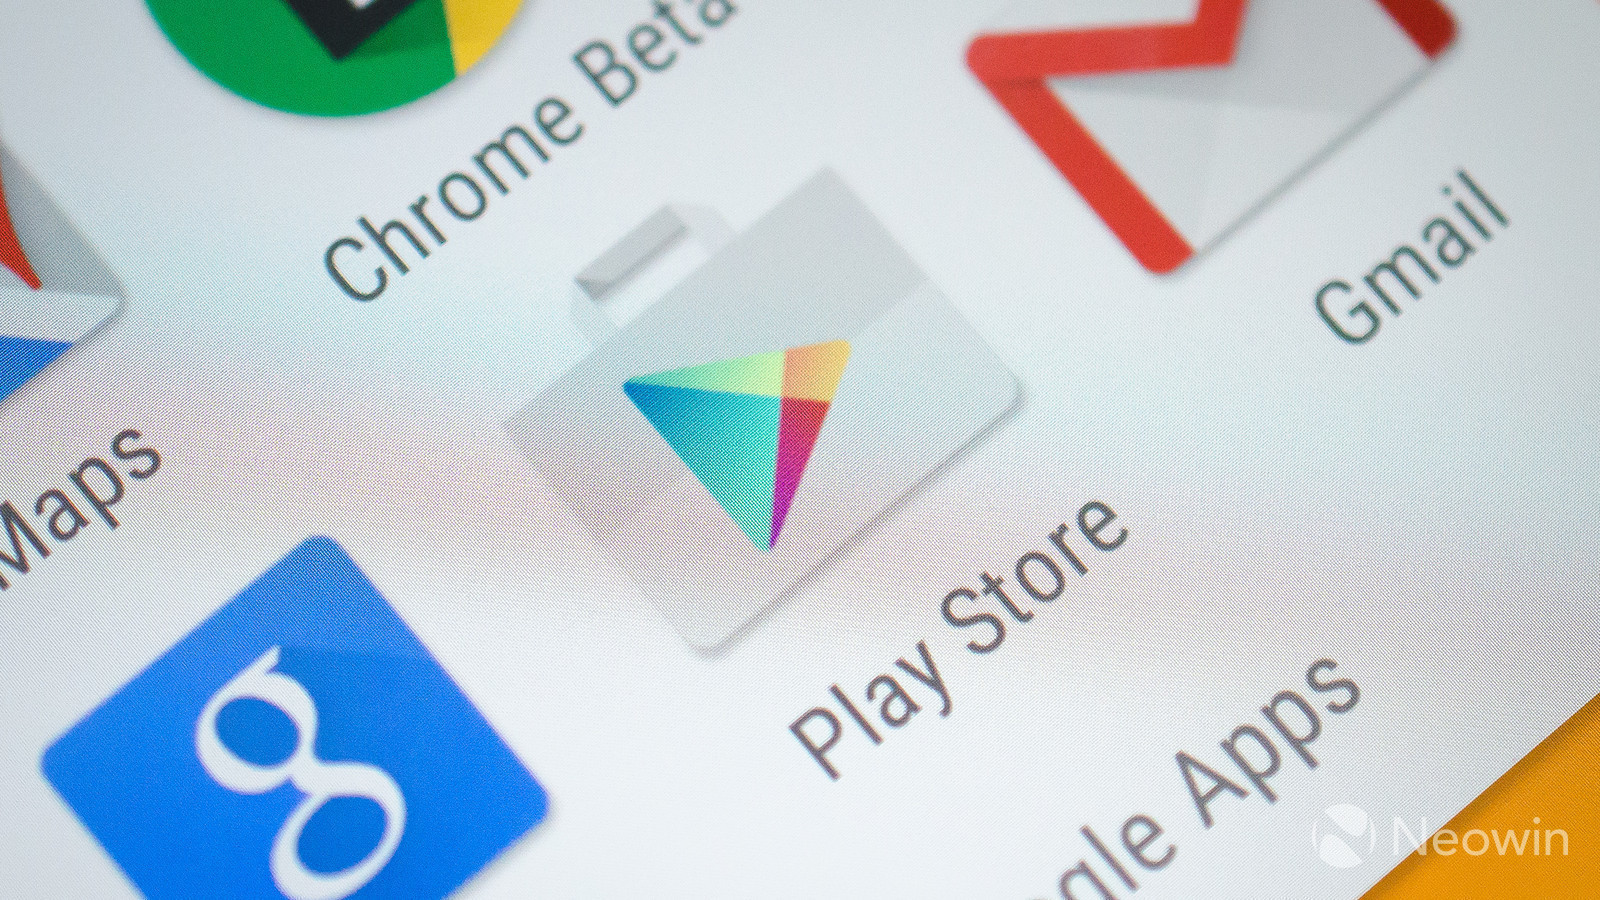 Google possibly testing some improvements to the Play Store - Neowin